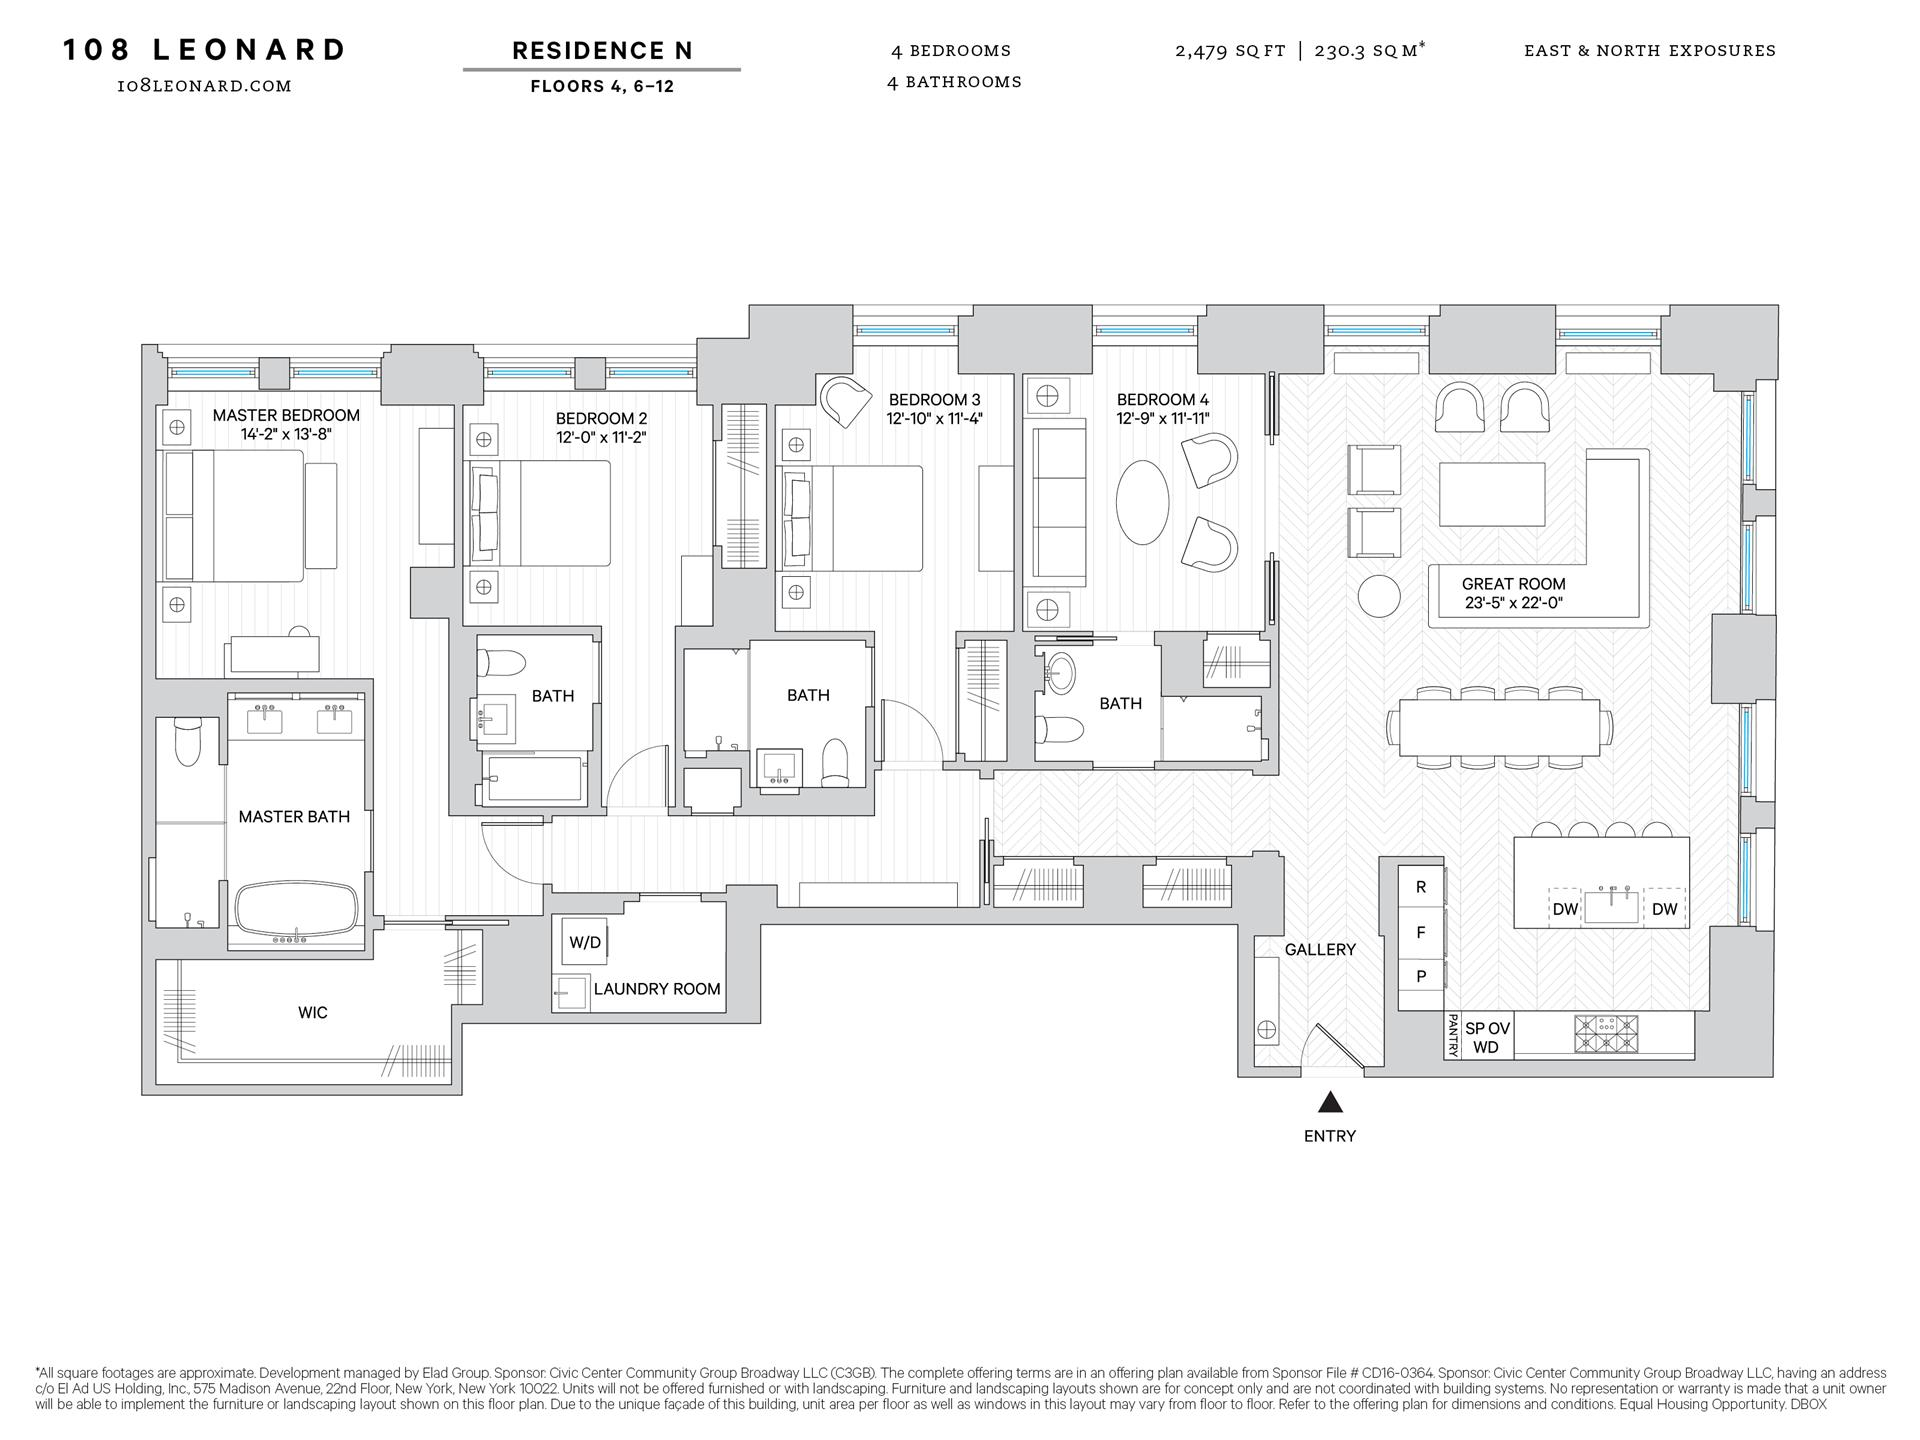 Floor plan of 108 Leonard St, 8N - TriBeCa, New York